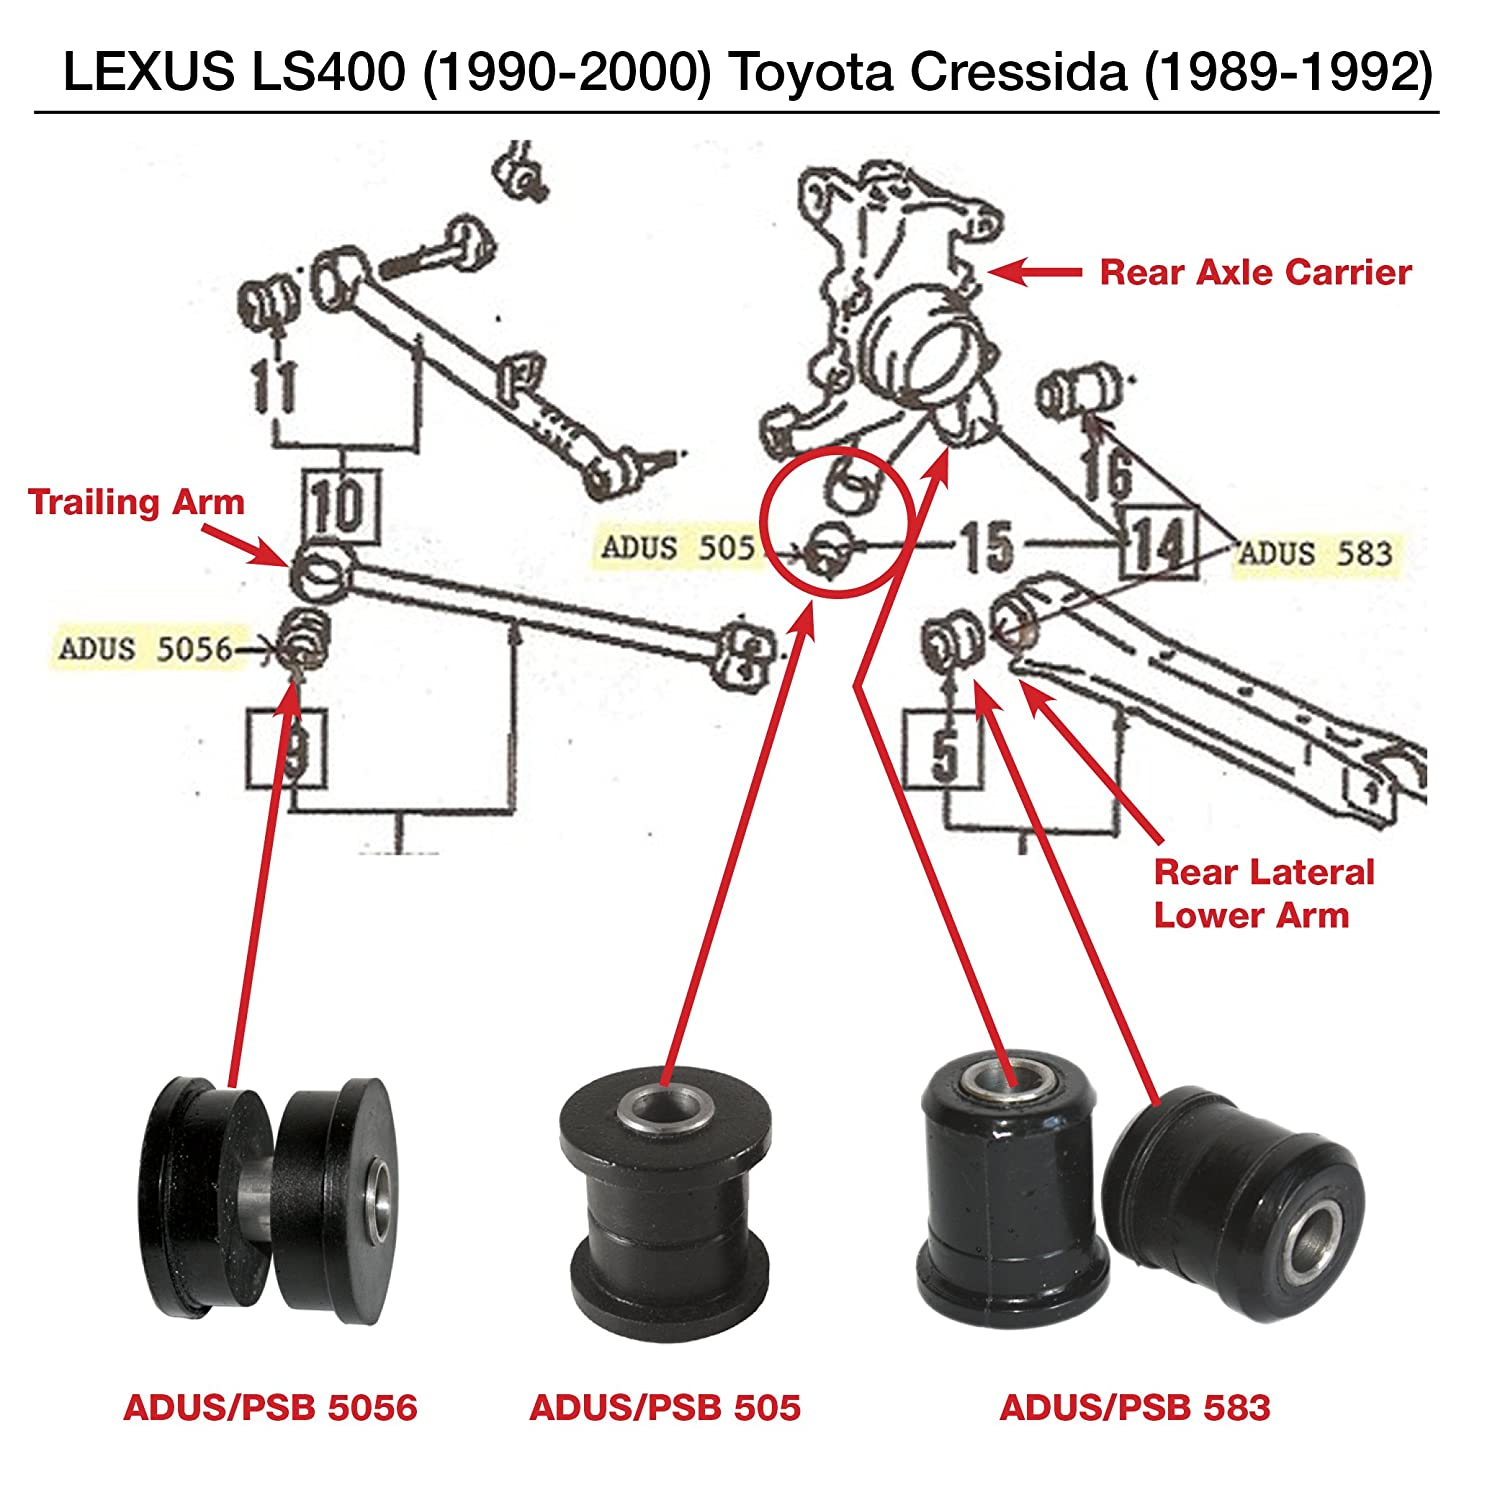 LS400 90-00 Cressida 89-92 Rear Axle Carrier /& Trailing Arm Bushing Kit x2 PSB 505 5056